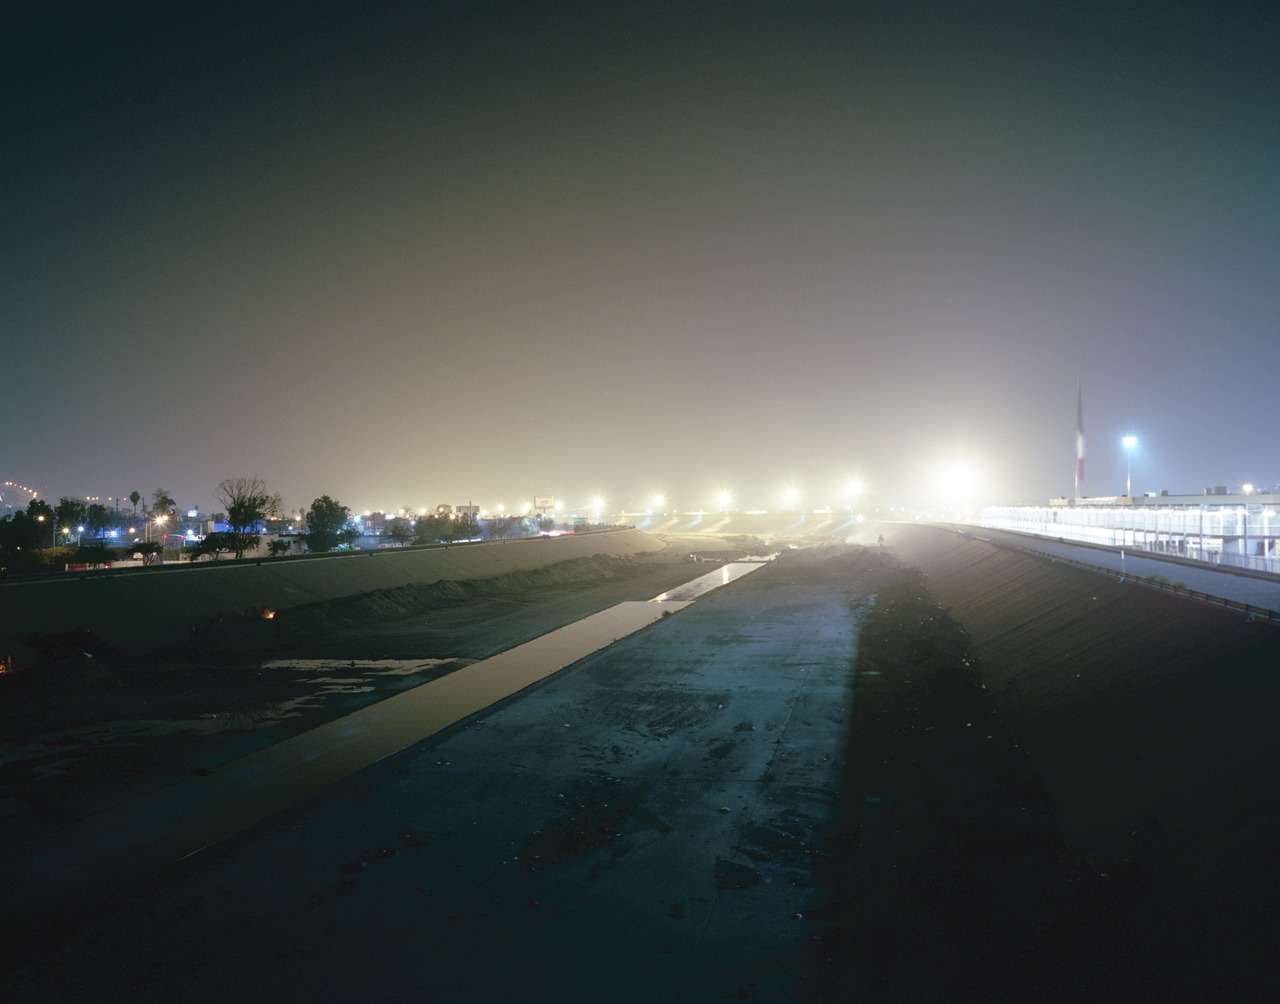 The border at night, taken from Mexico side